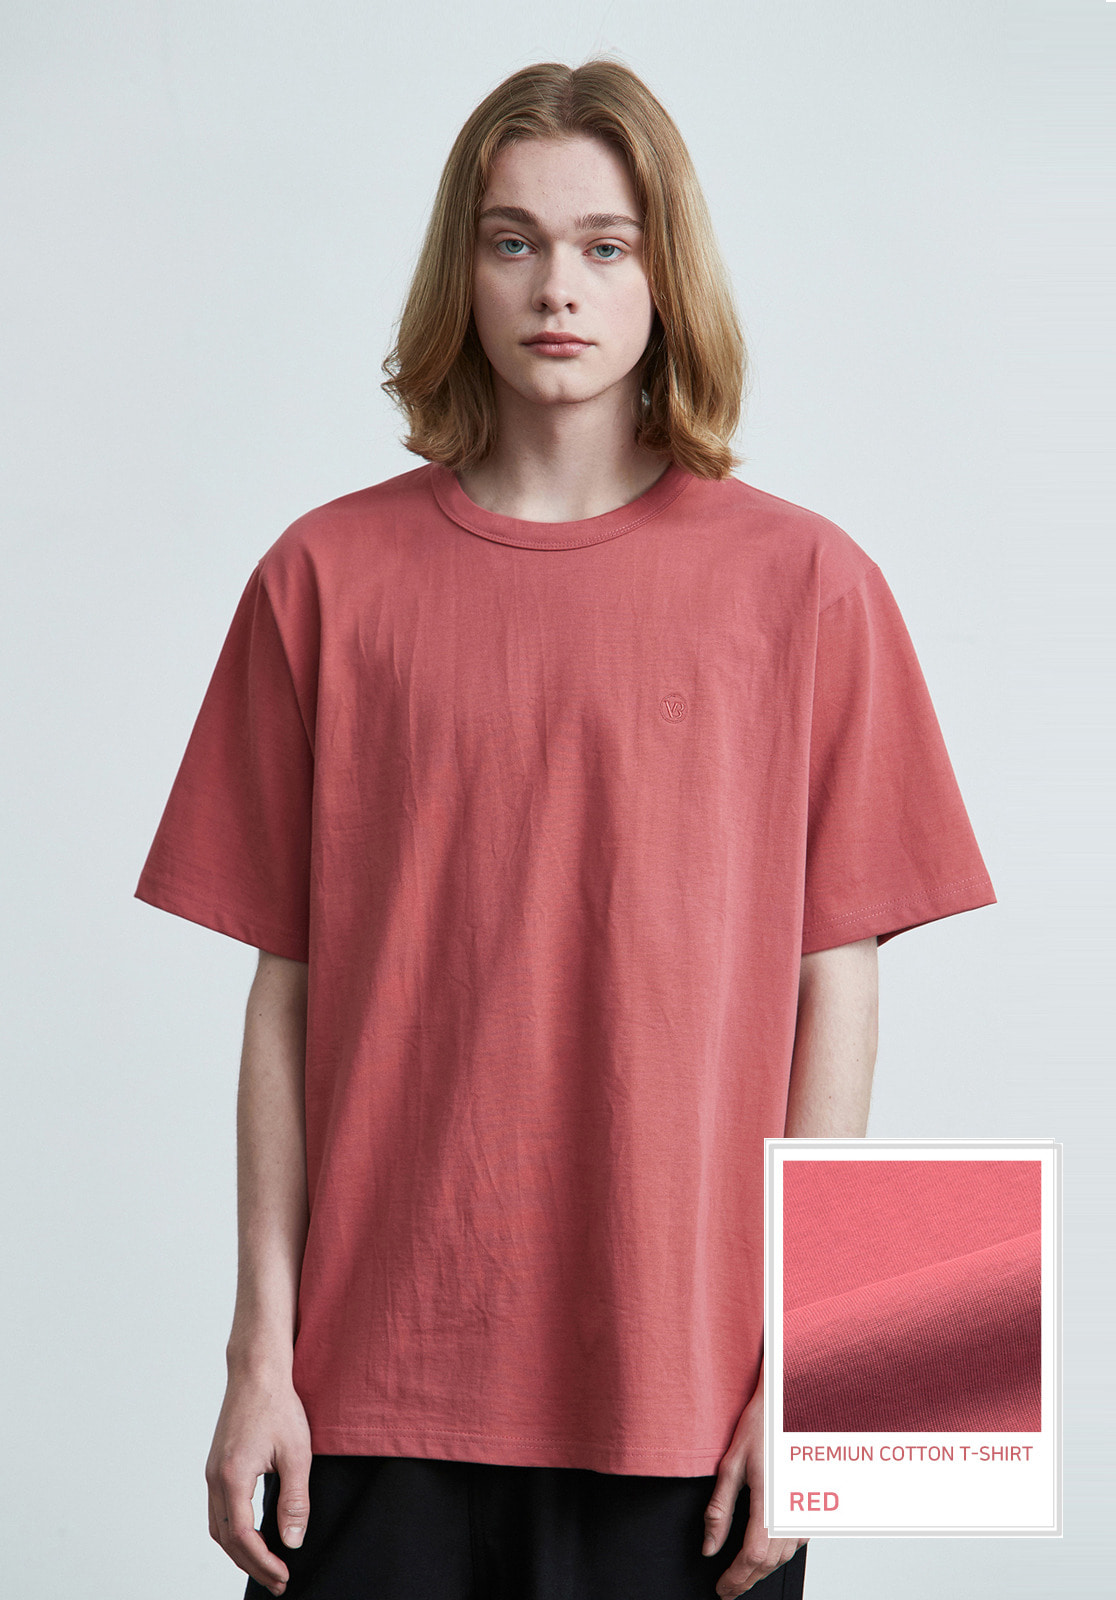 V017 PRIMIUM COTTON T-SHIRTS  RED